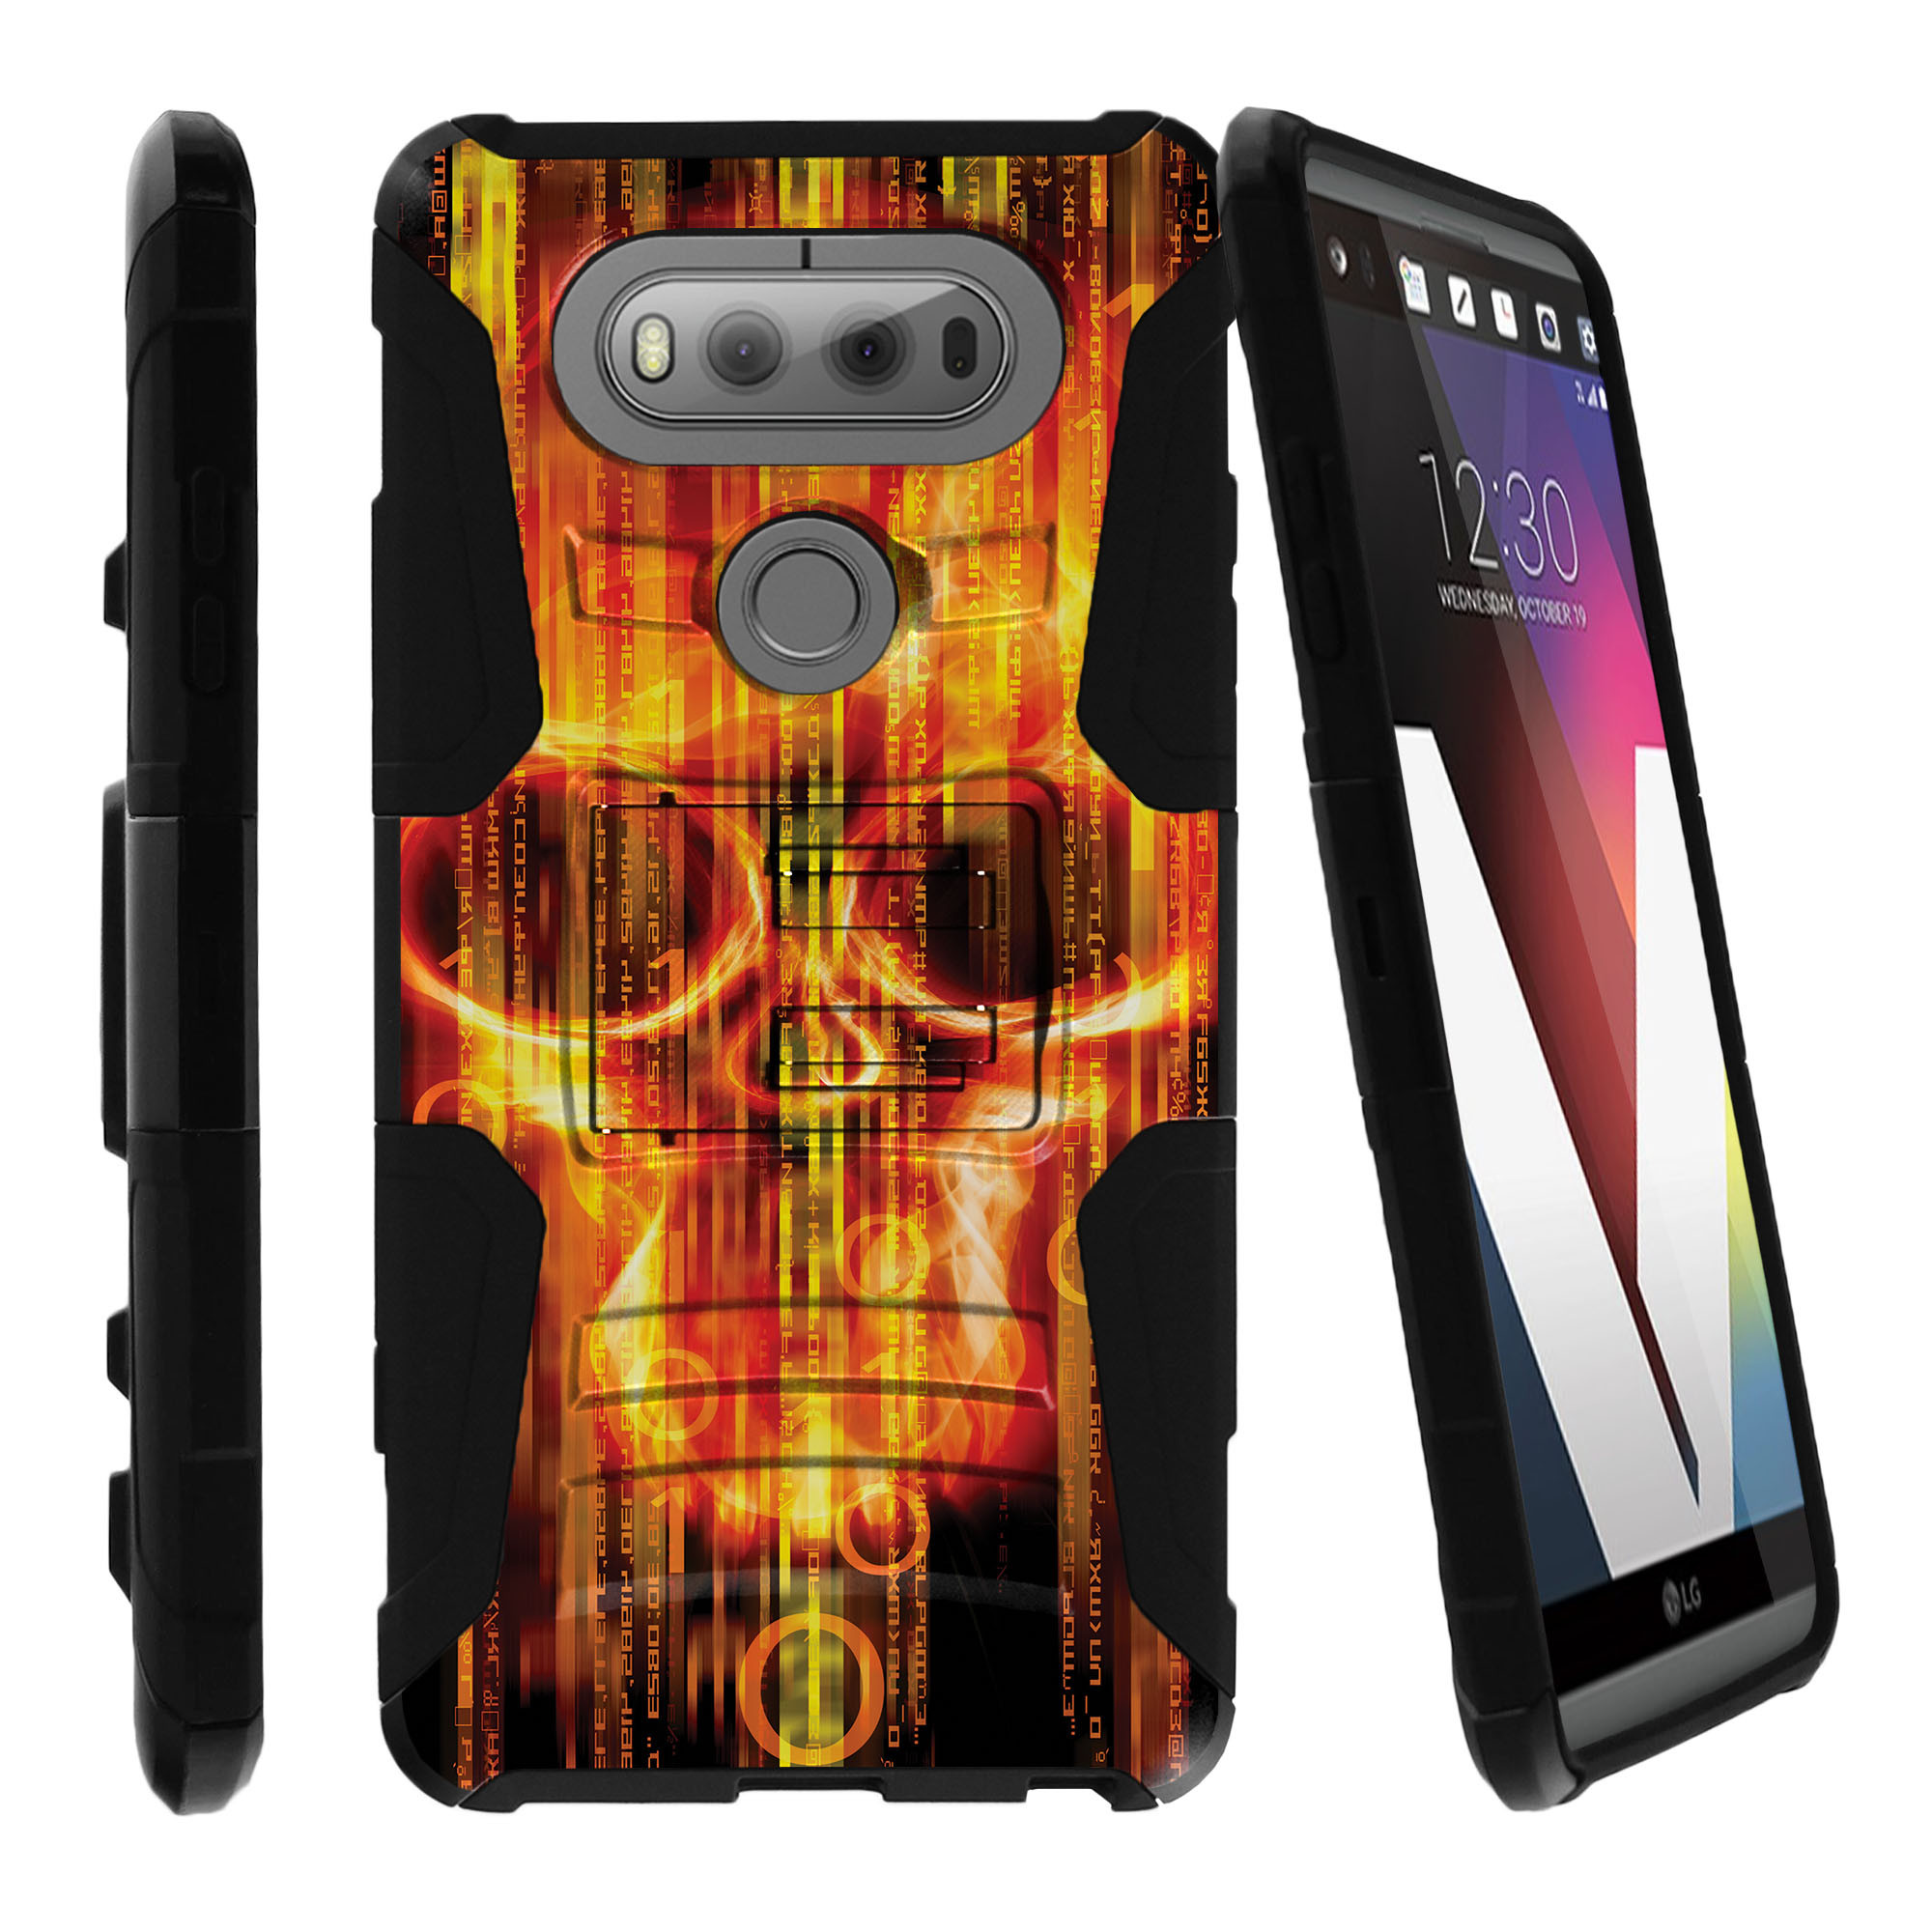 LG V20 Case | V20 Case Shell [Clip Armor]- Premium Defender Case Hard Shell Silicone Interior with Kickstand and Holster by Miniturtle® - Digital Skull